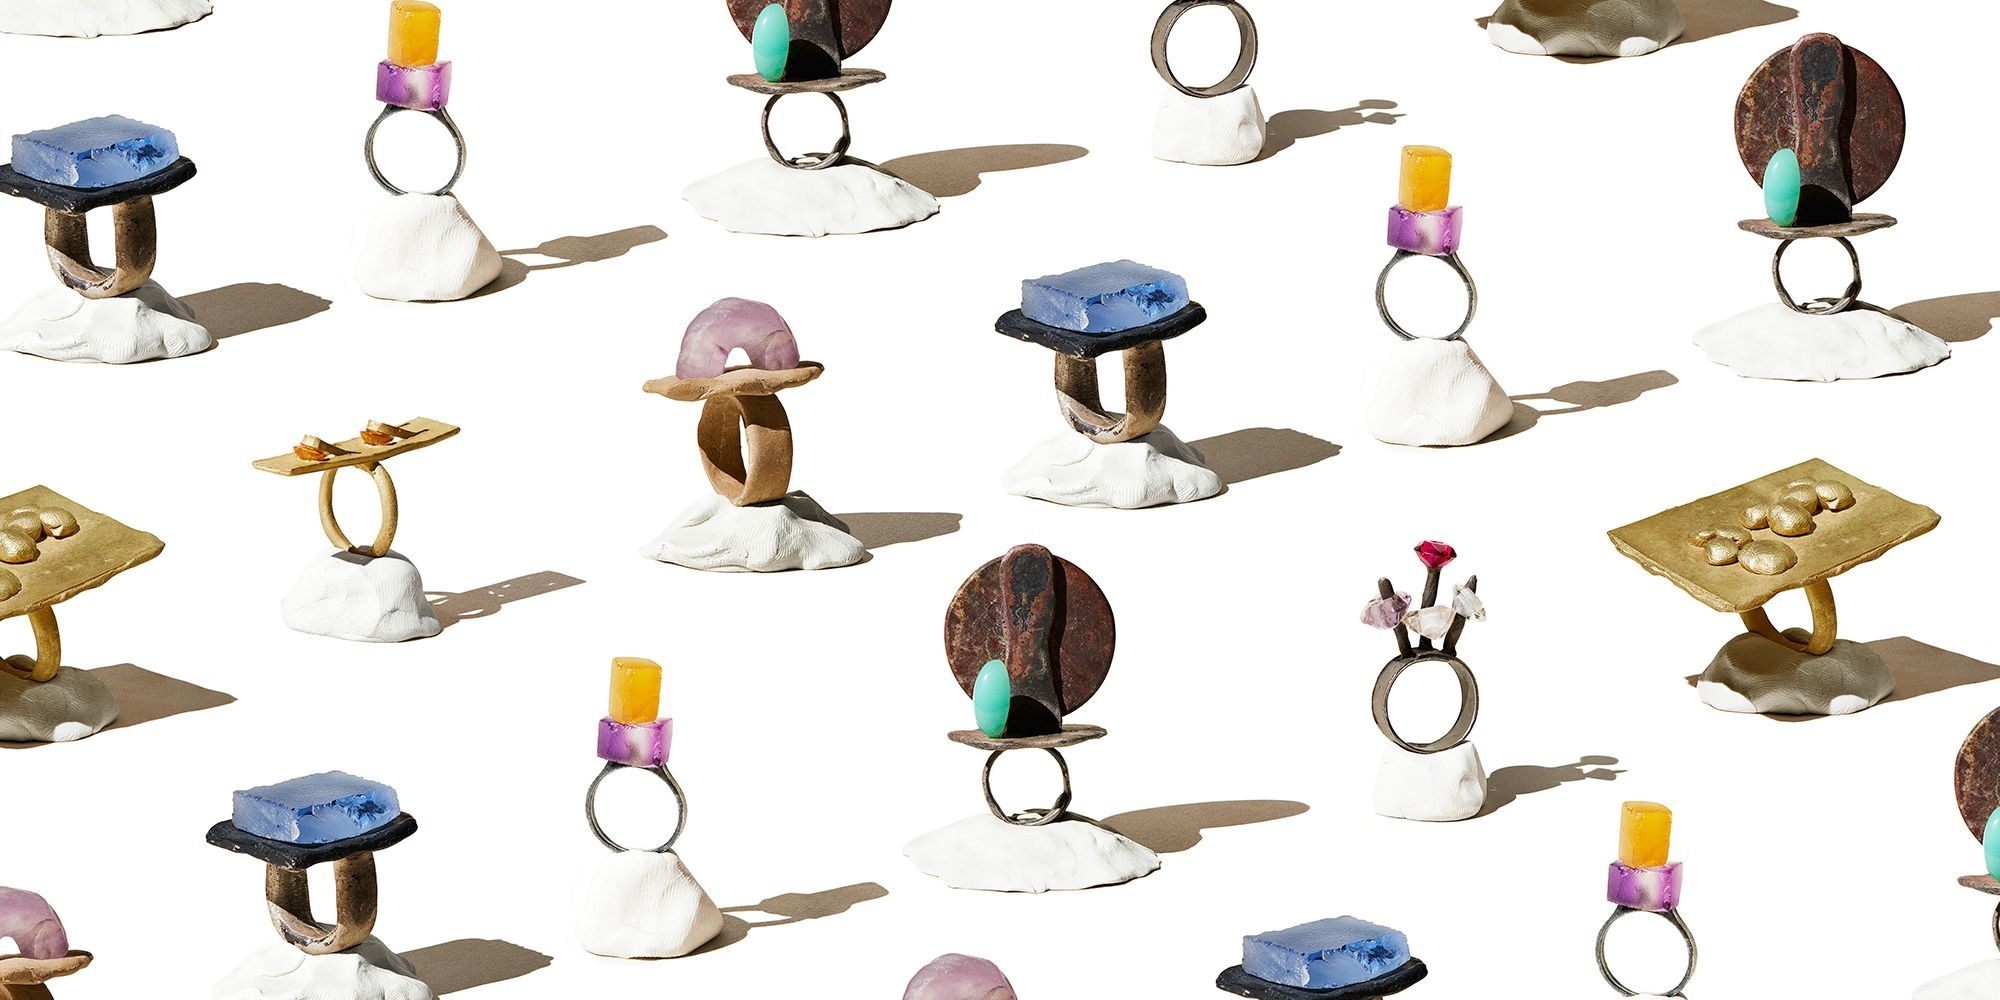 Karl Fritsch Makes Rings That Aspire to Sculpture